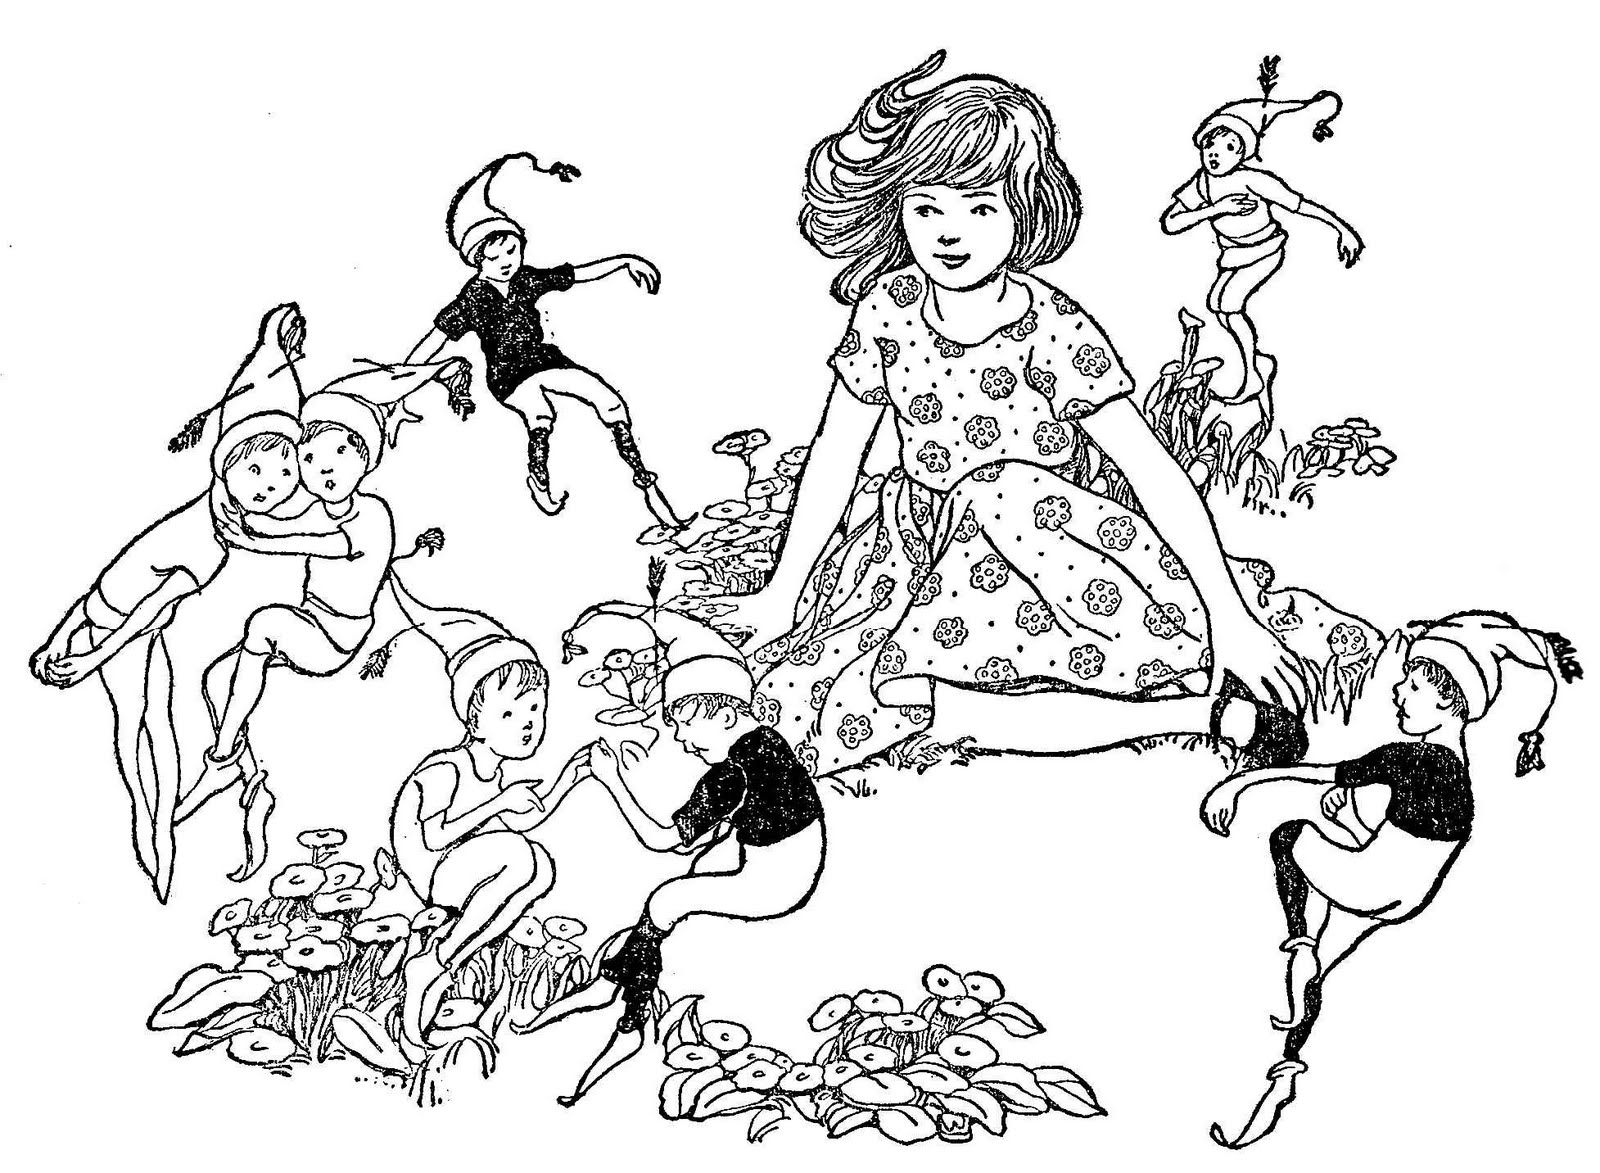 coloring pages of fairies and pixies pixie hollow fairies coloring pages coloring home of pixies fairies pages coloring and